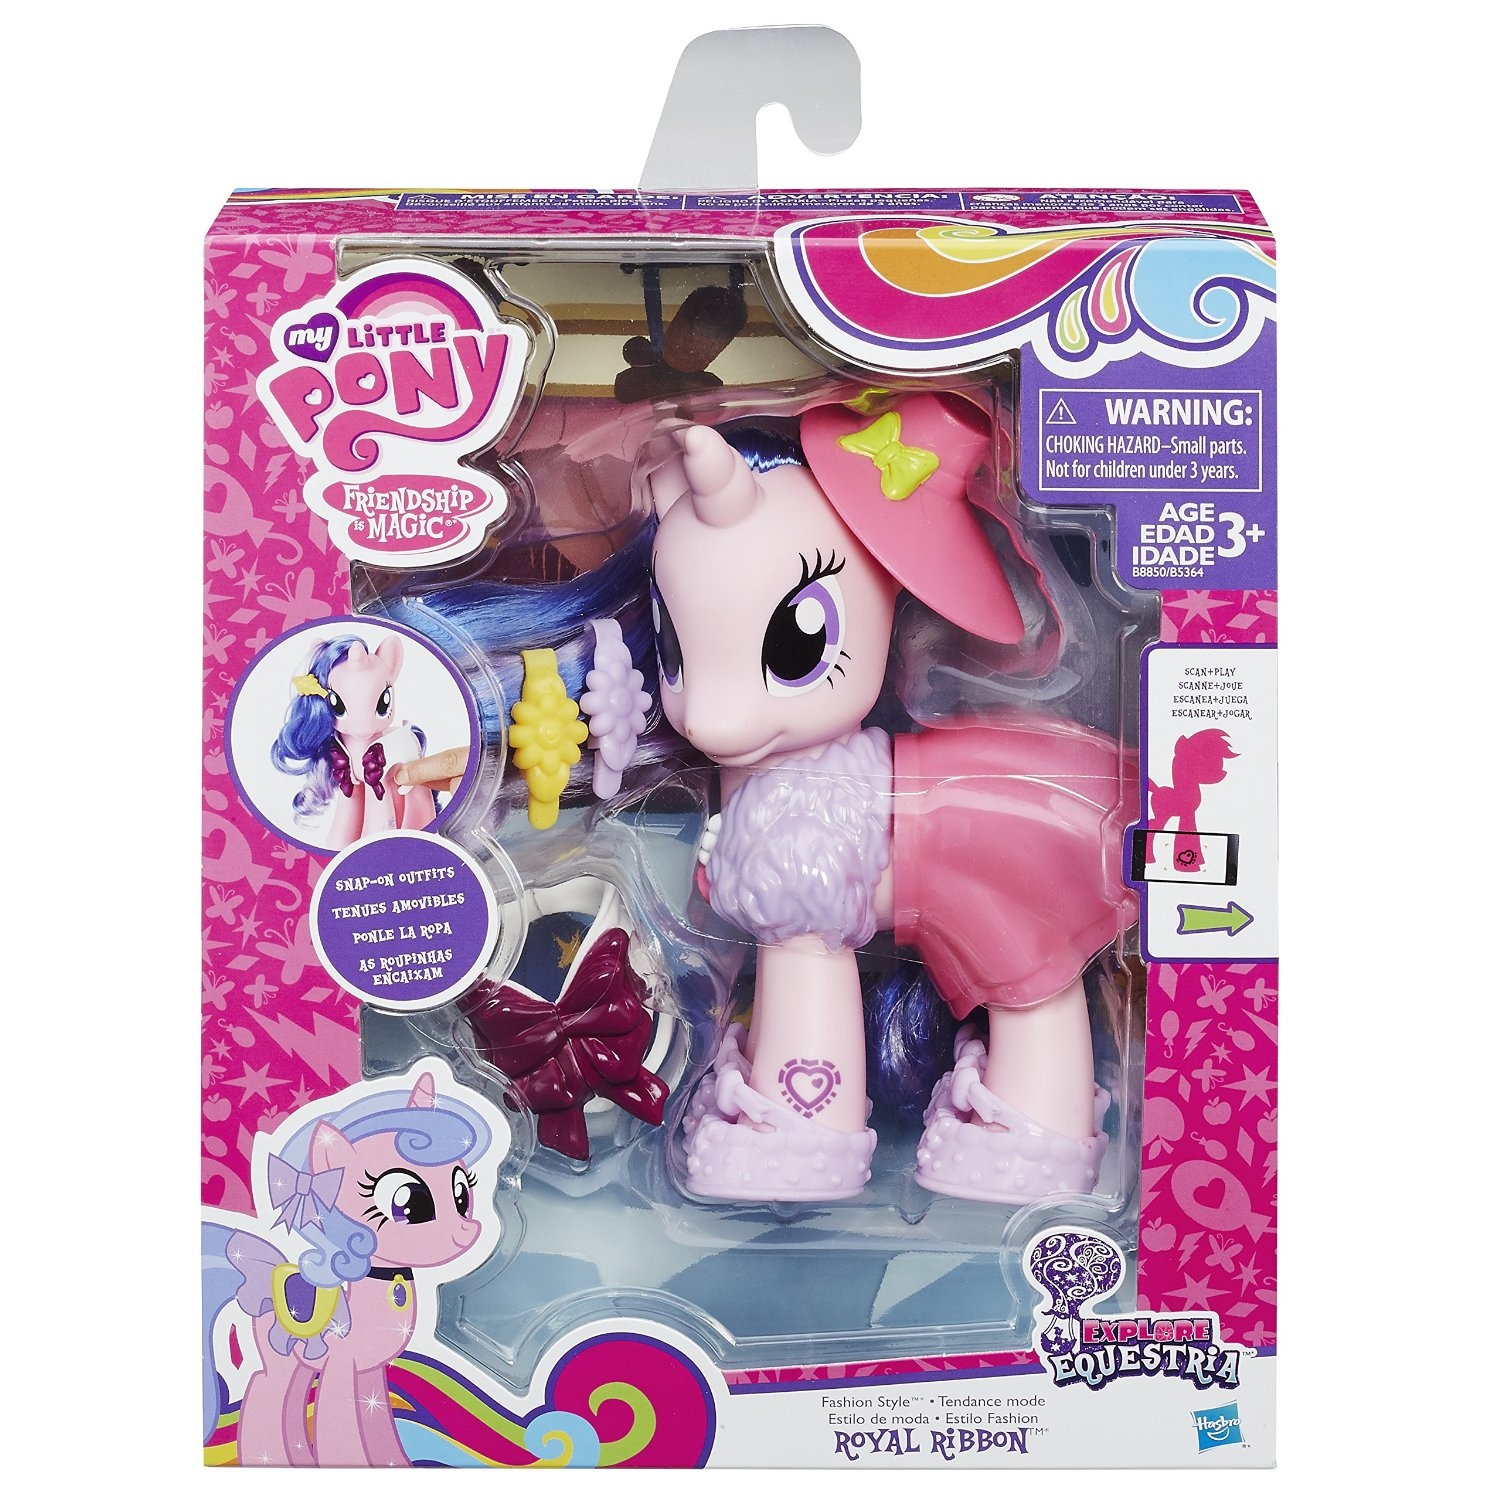 Images Of New Explore Equestria Brushables Found On Amazon